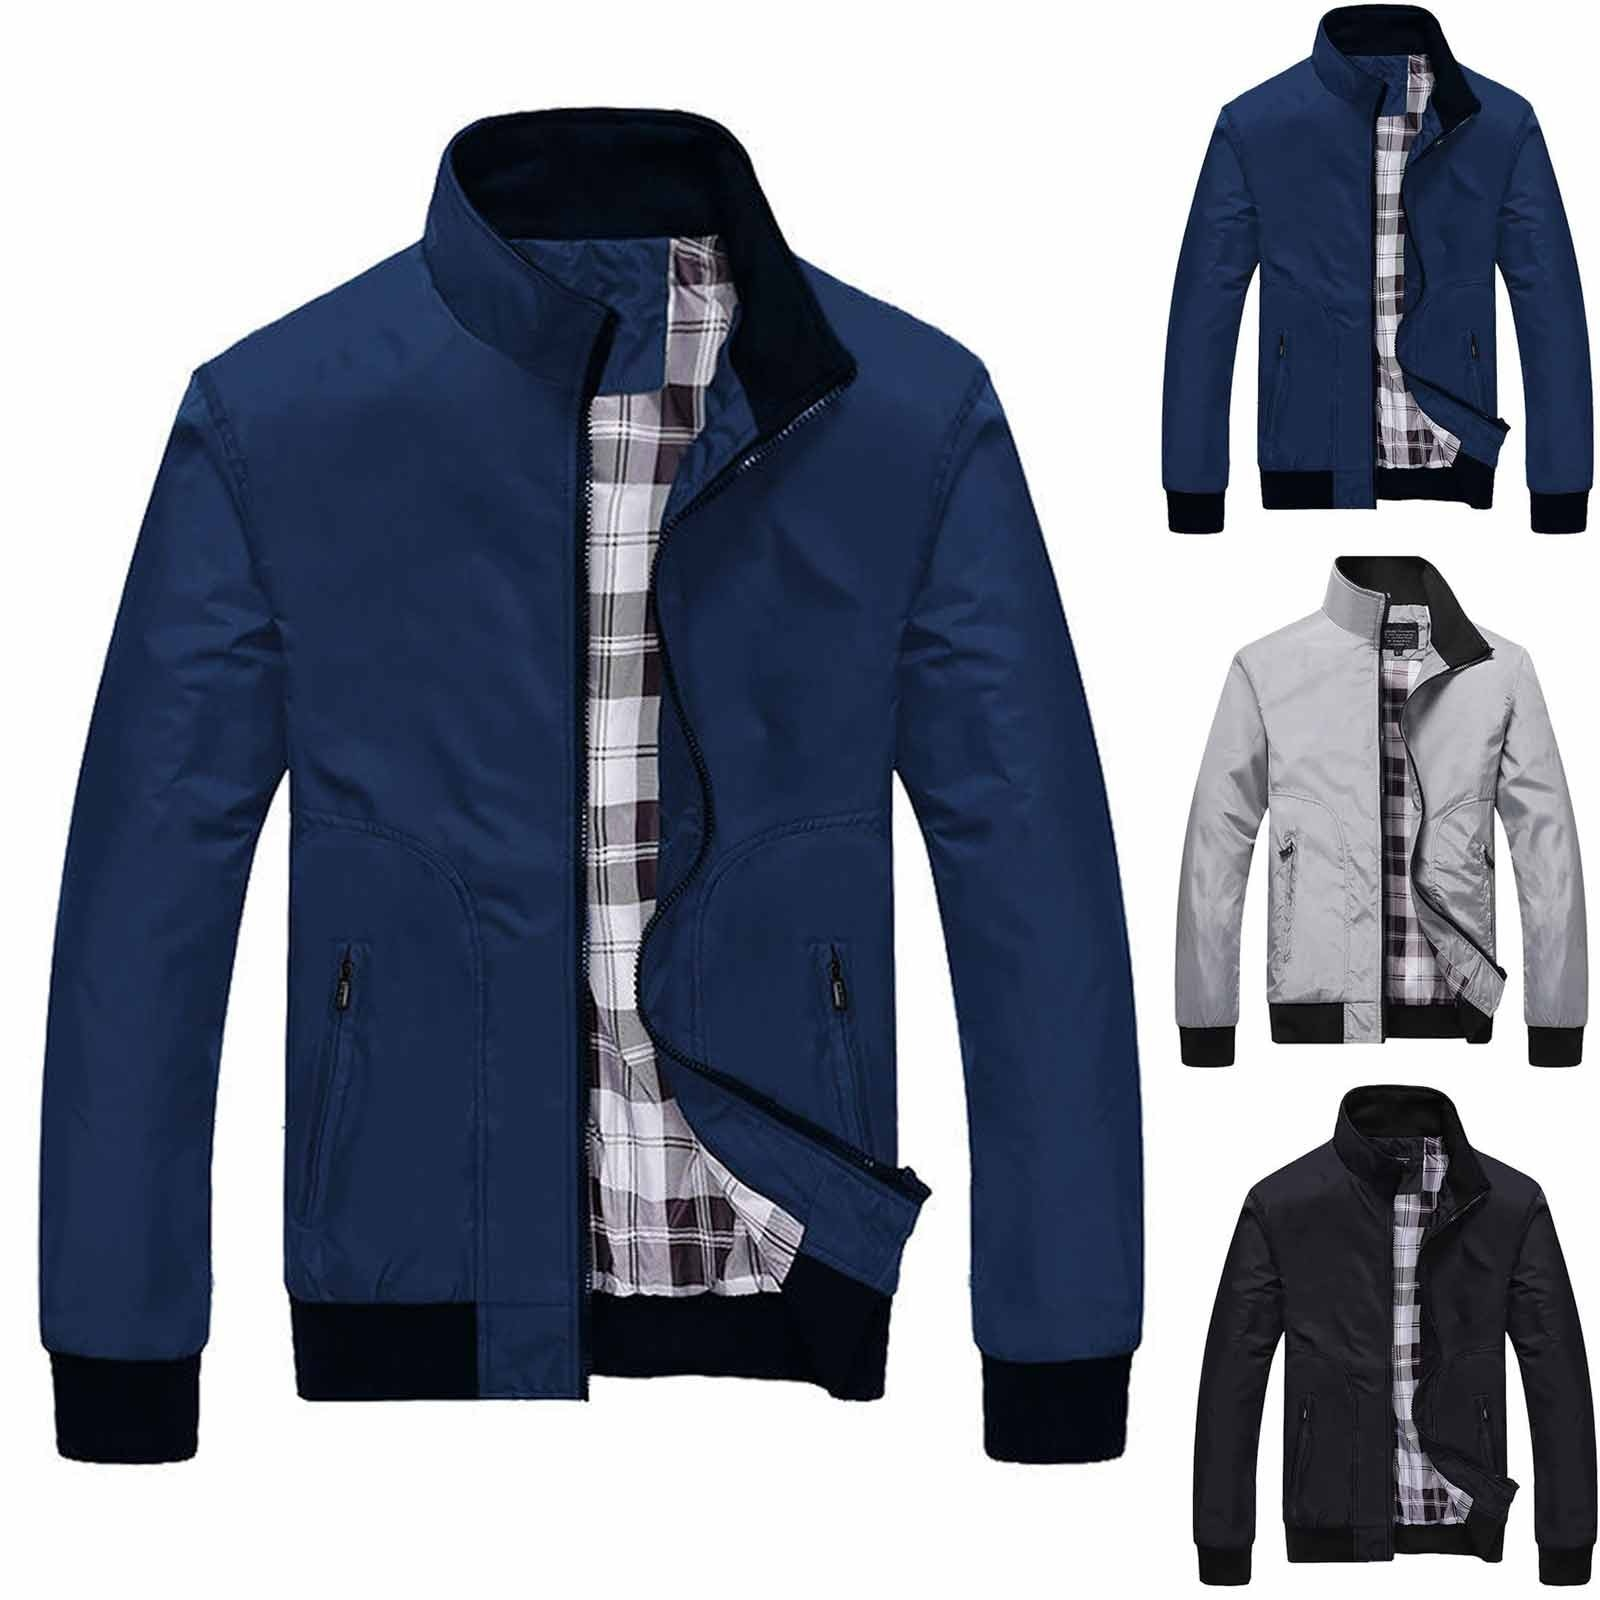 Men's autumn and winter casual zipper solid color cashmere thickened jacket casual zipper stand collar jacket мужская куртка 6*